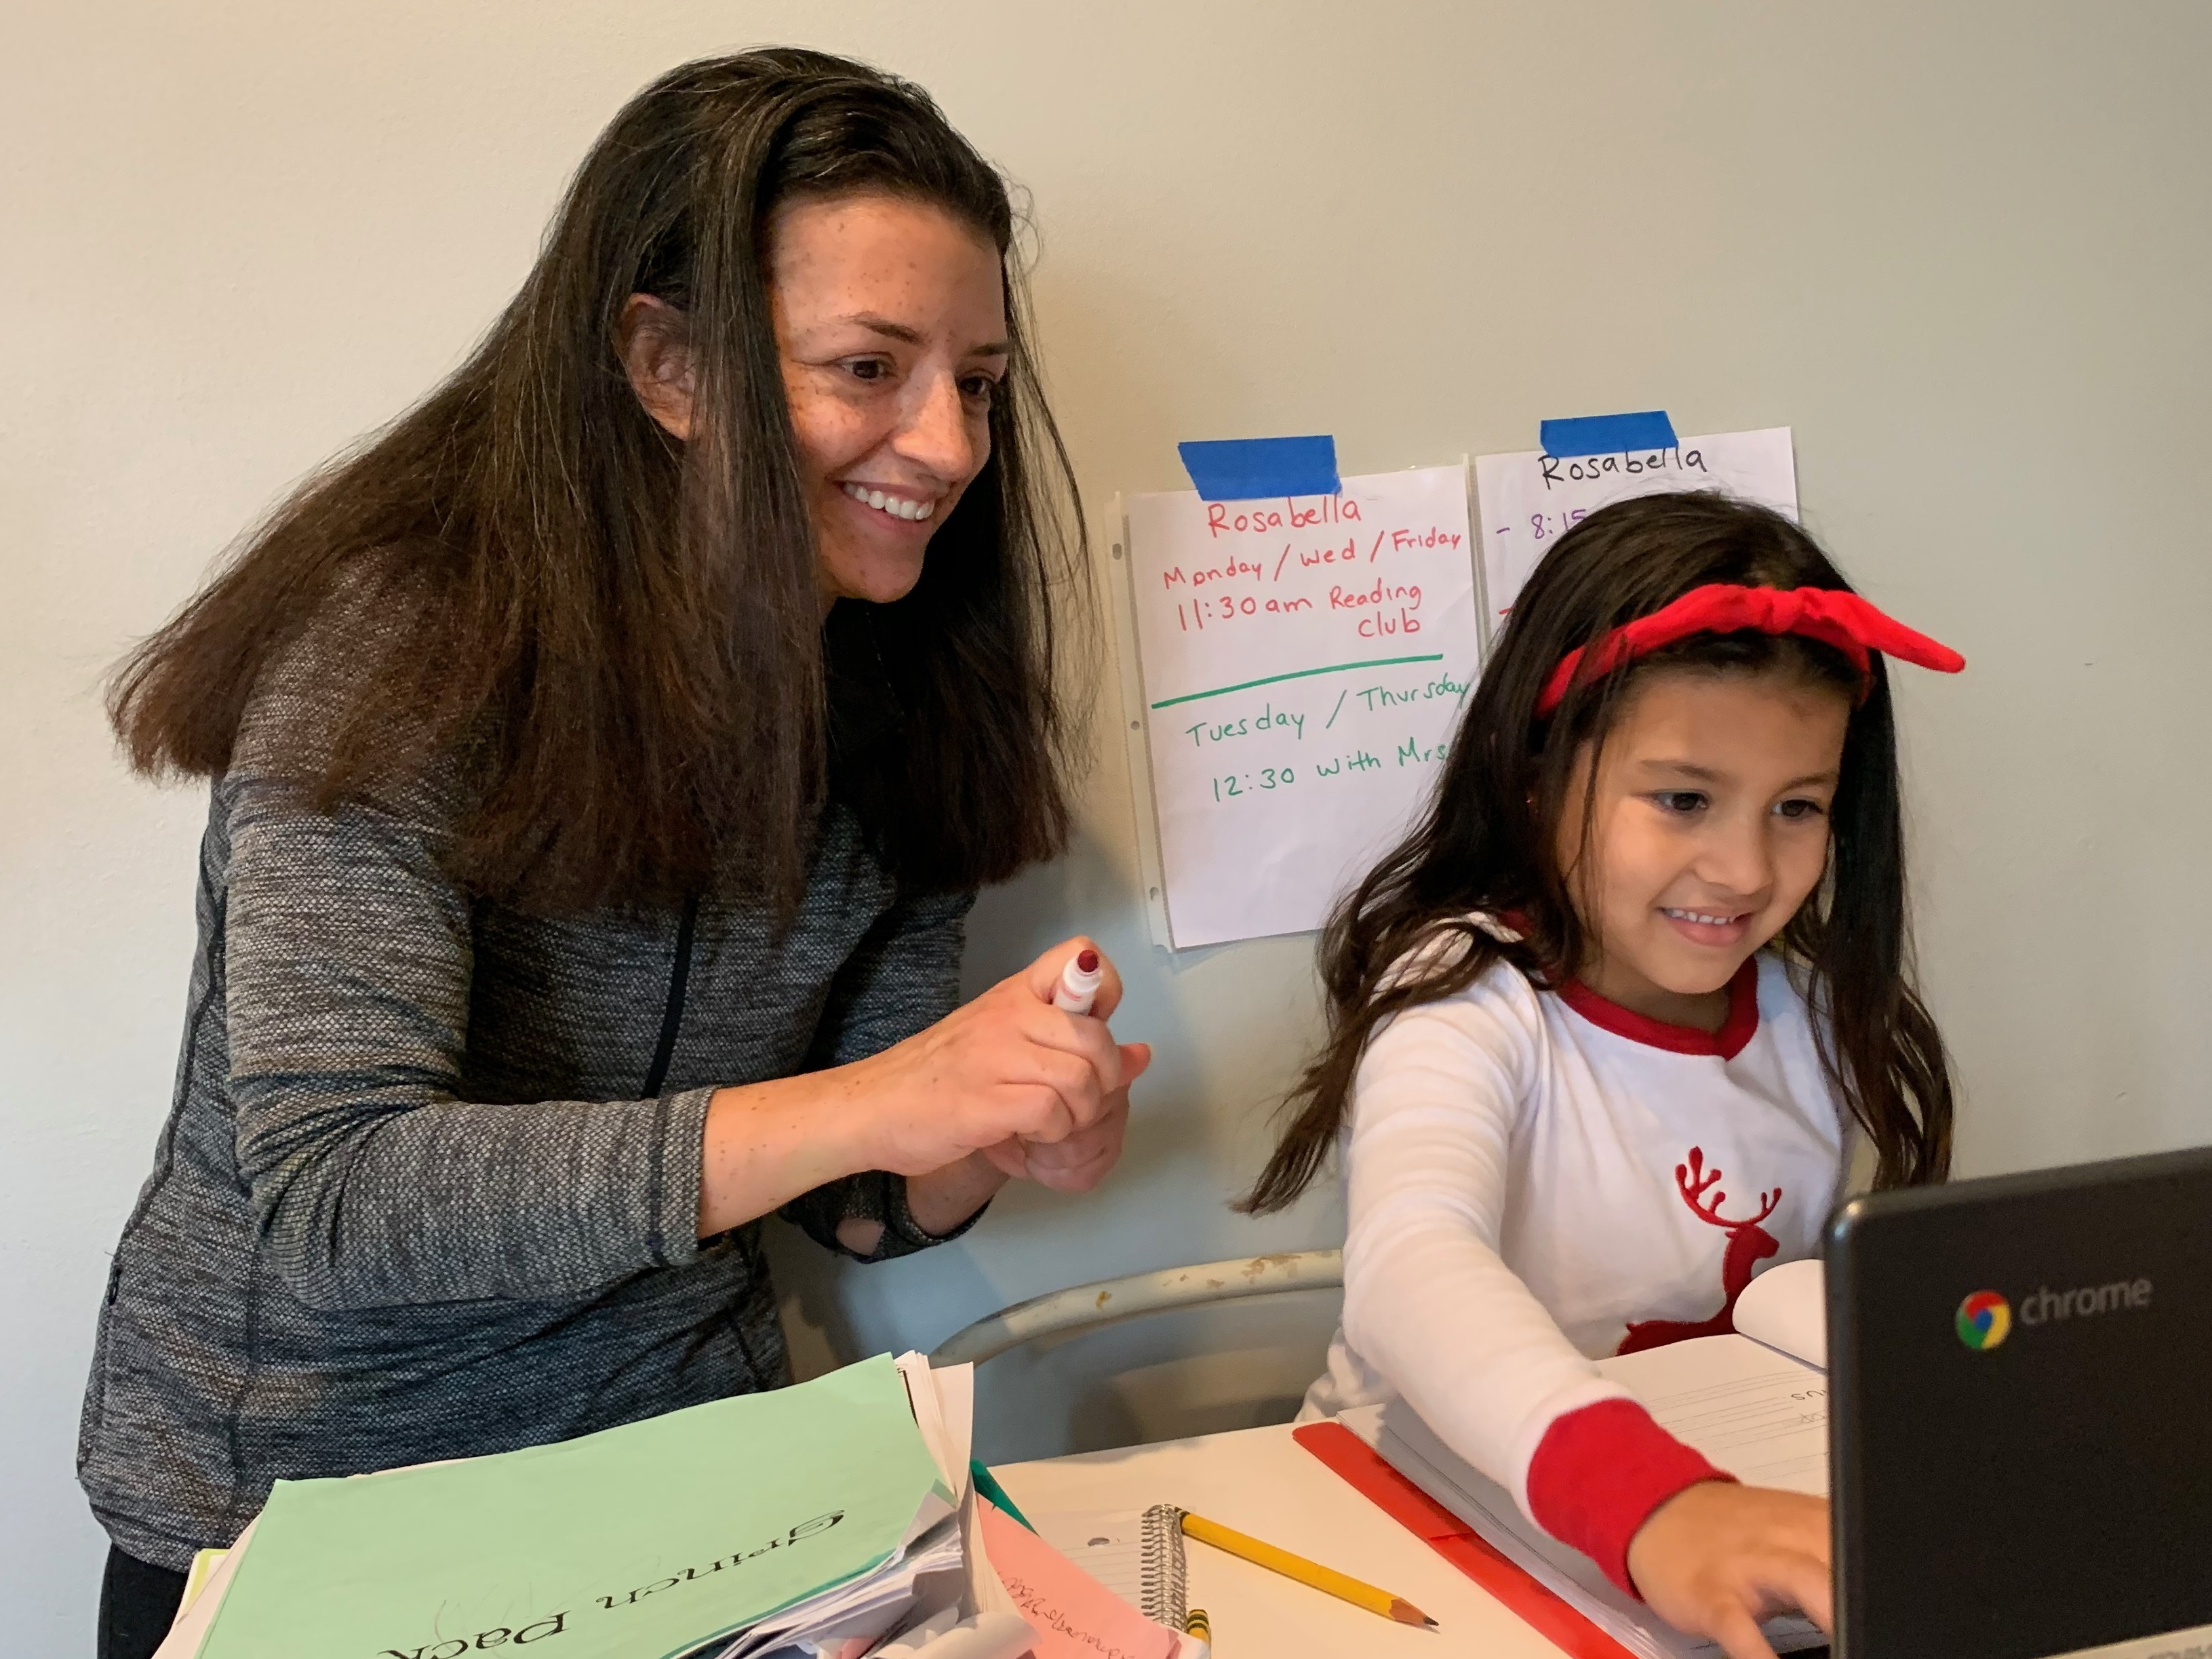 Parents With Disabilities Face Extra Hurdles With Kids' Remote Schooling